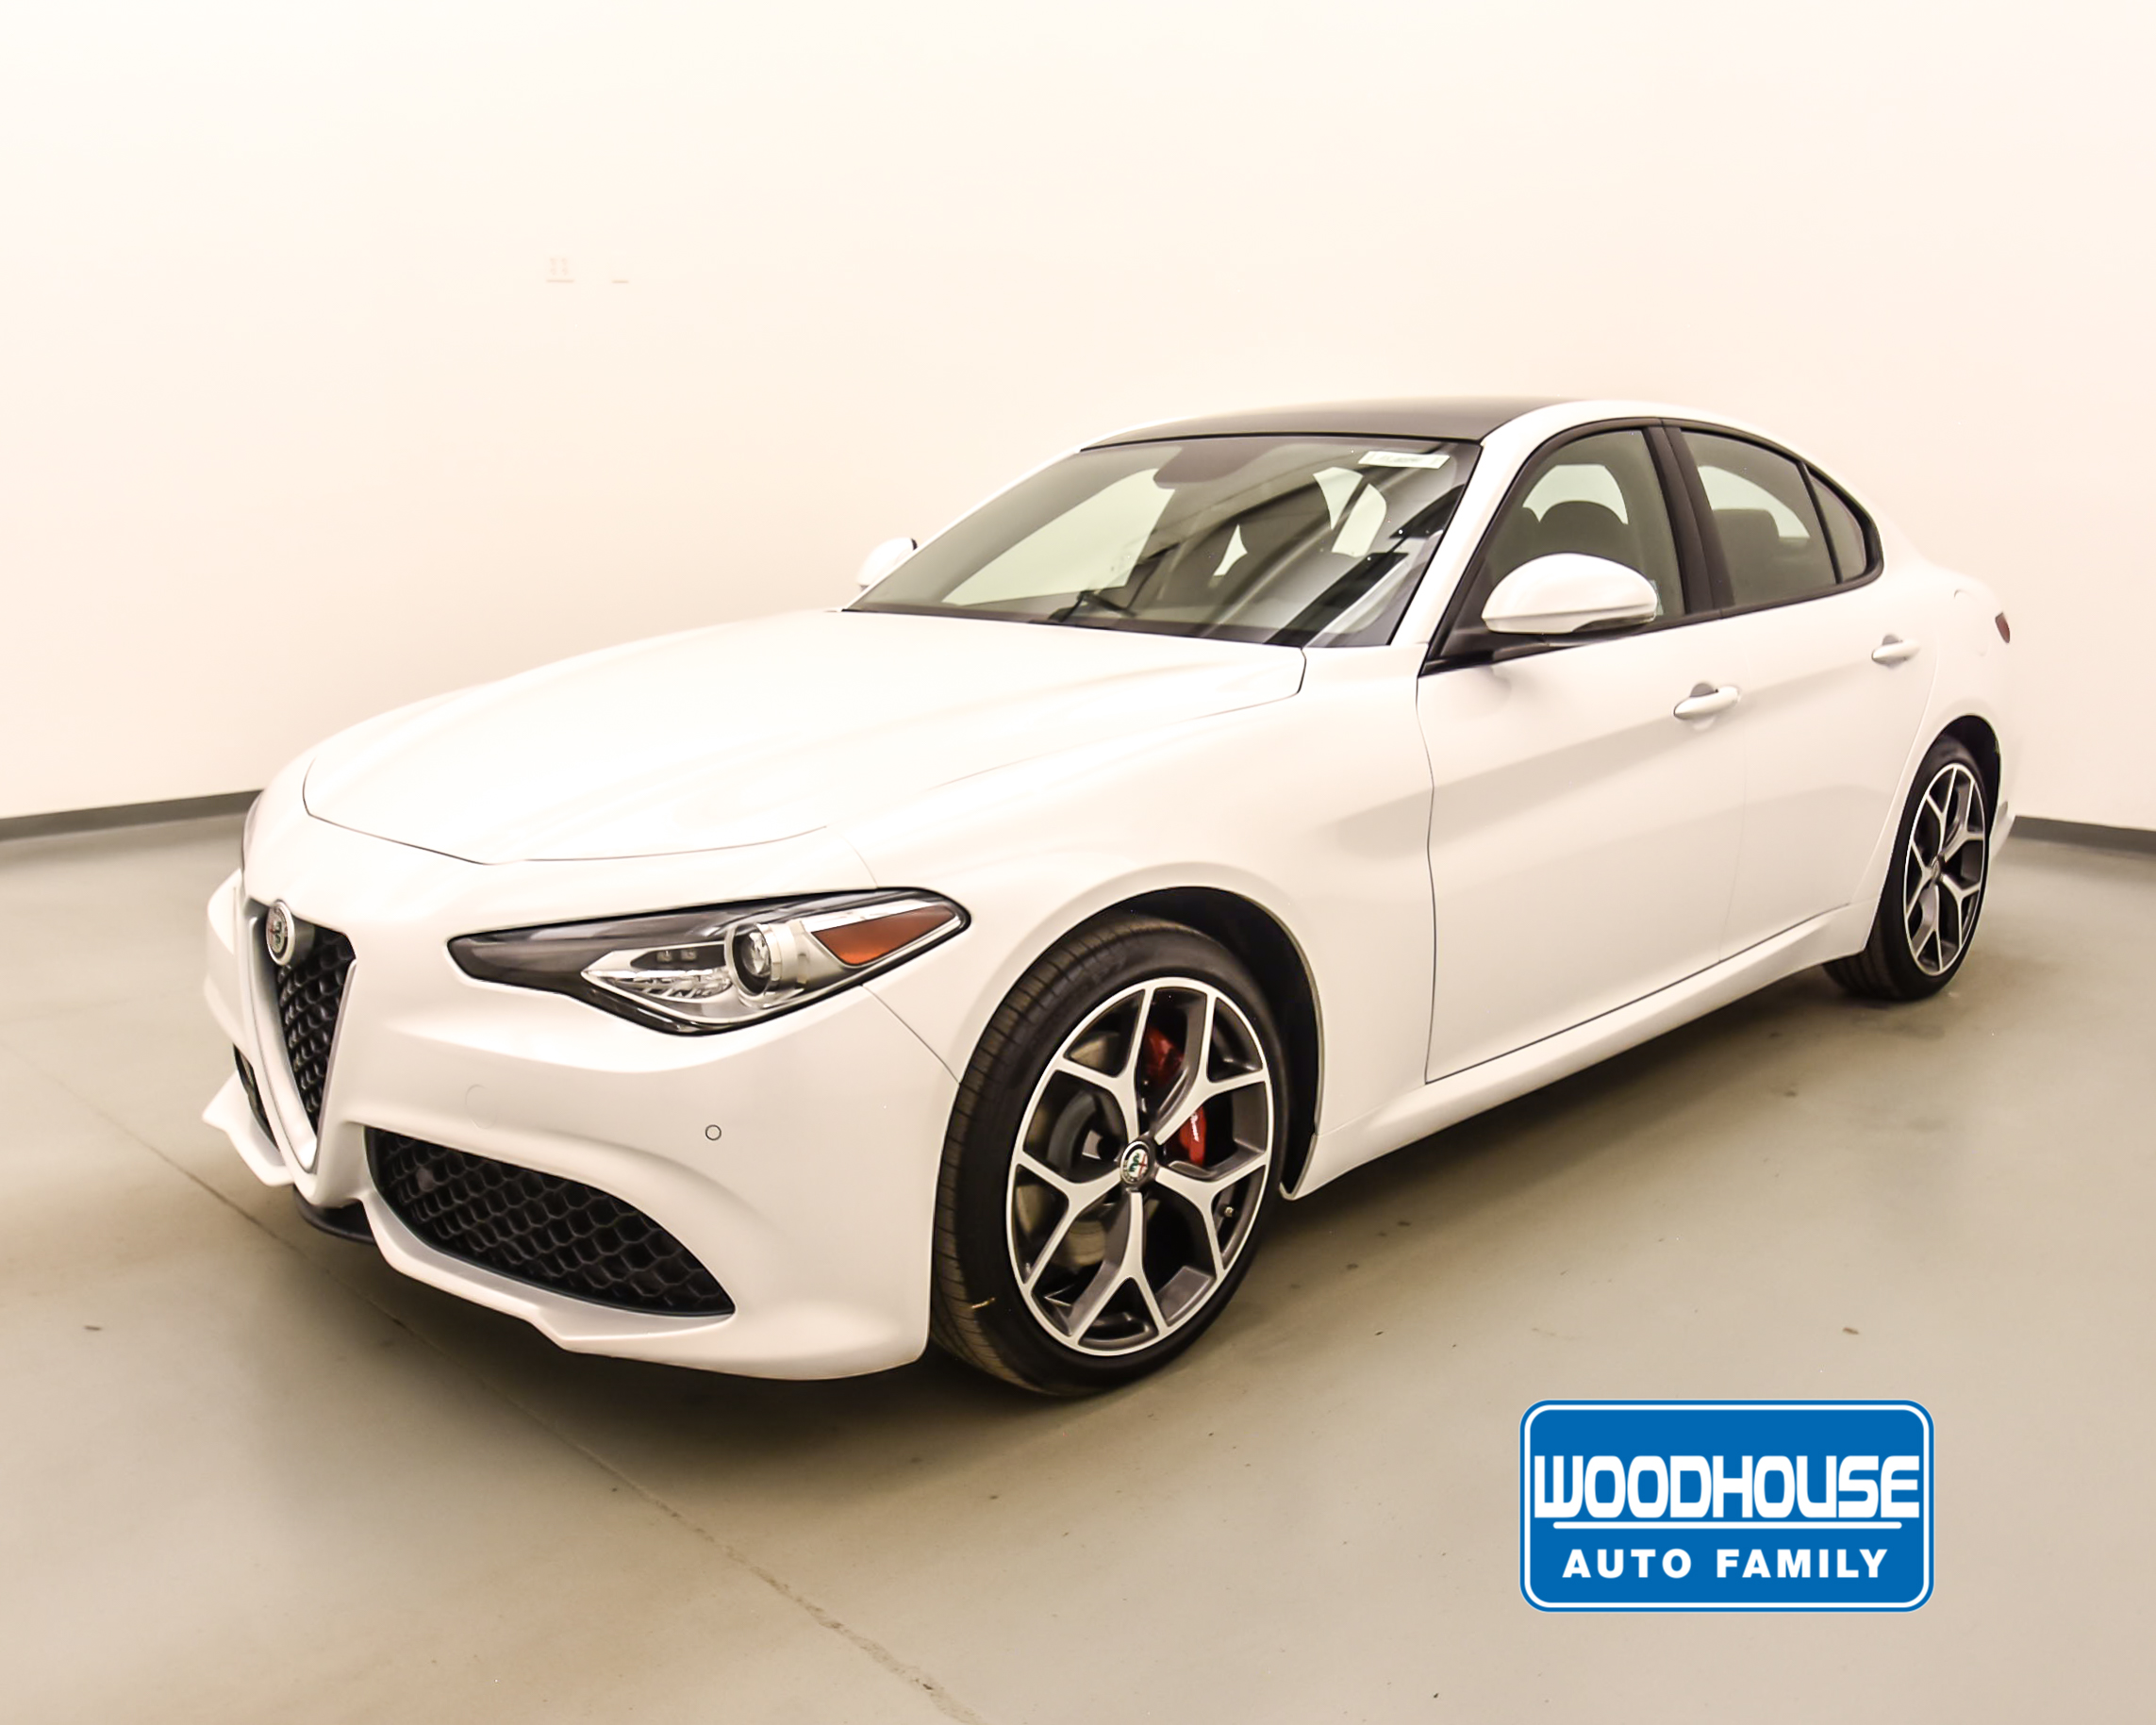 Woodhouse New 2018 Alfa Romeo Giulia For Sale